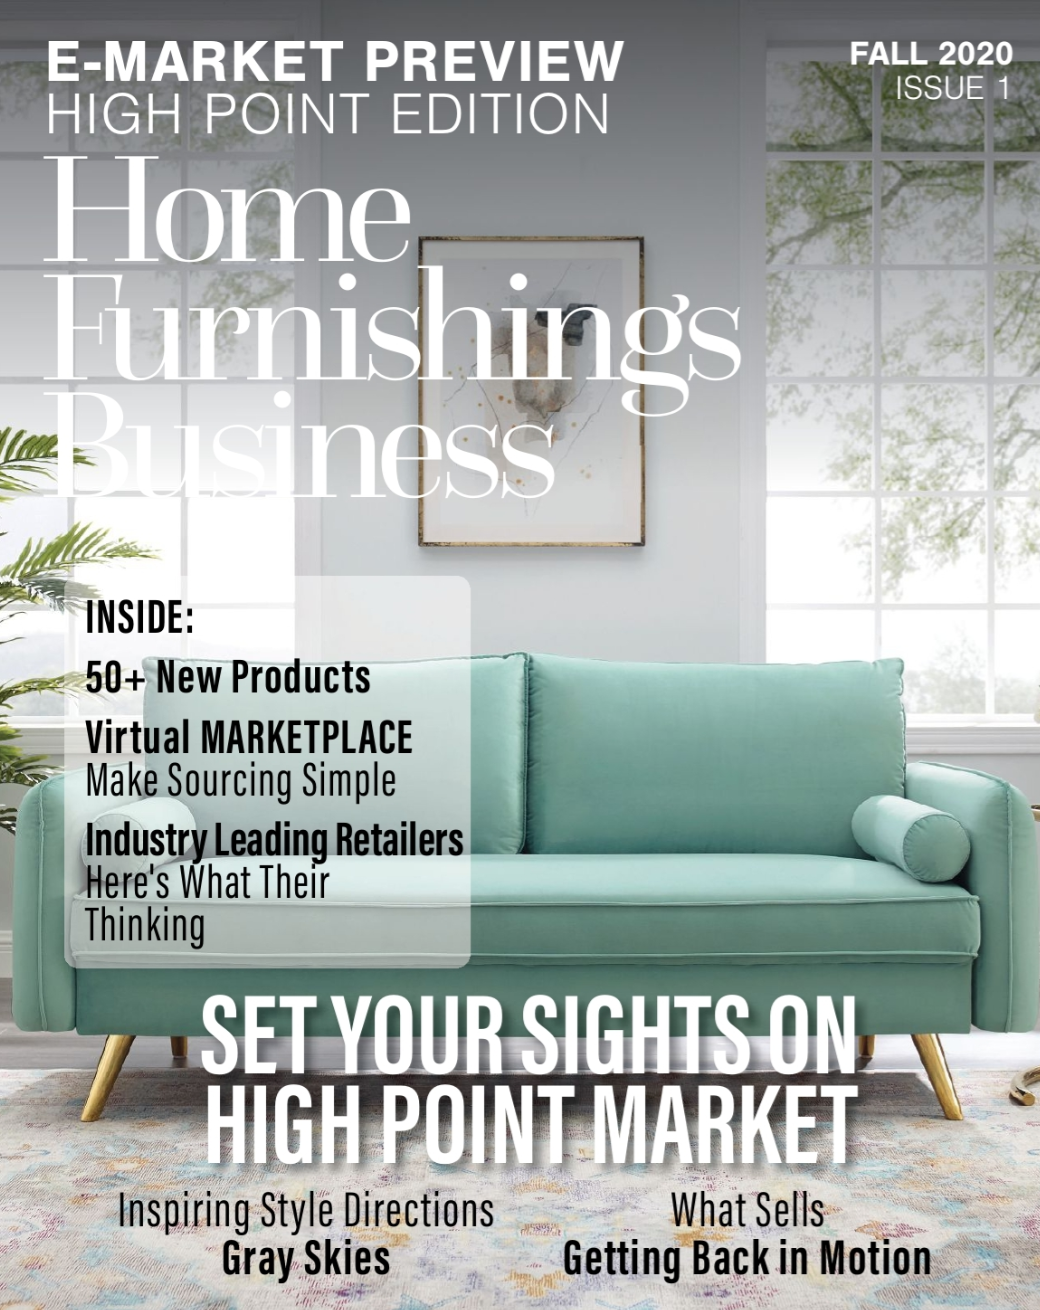 High Point E-Market Fall 2020 Preview #1